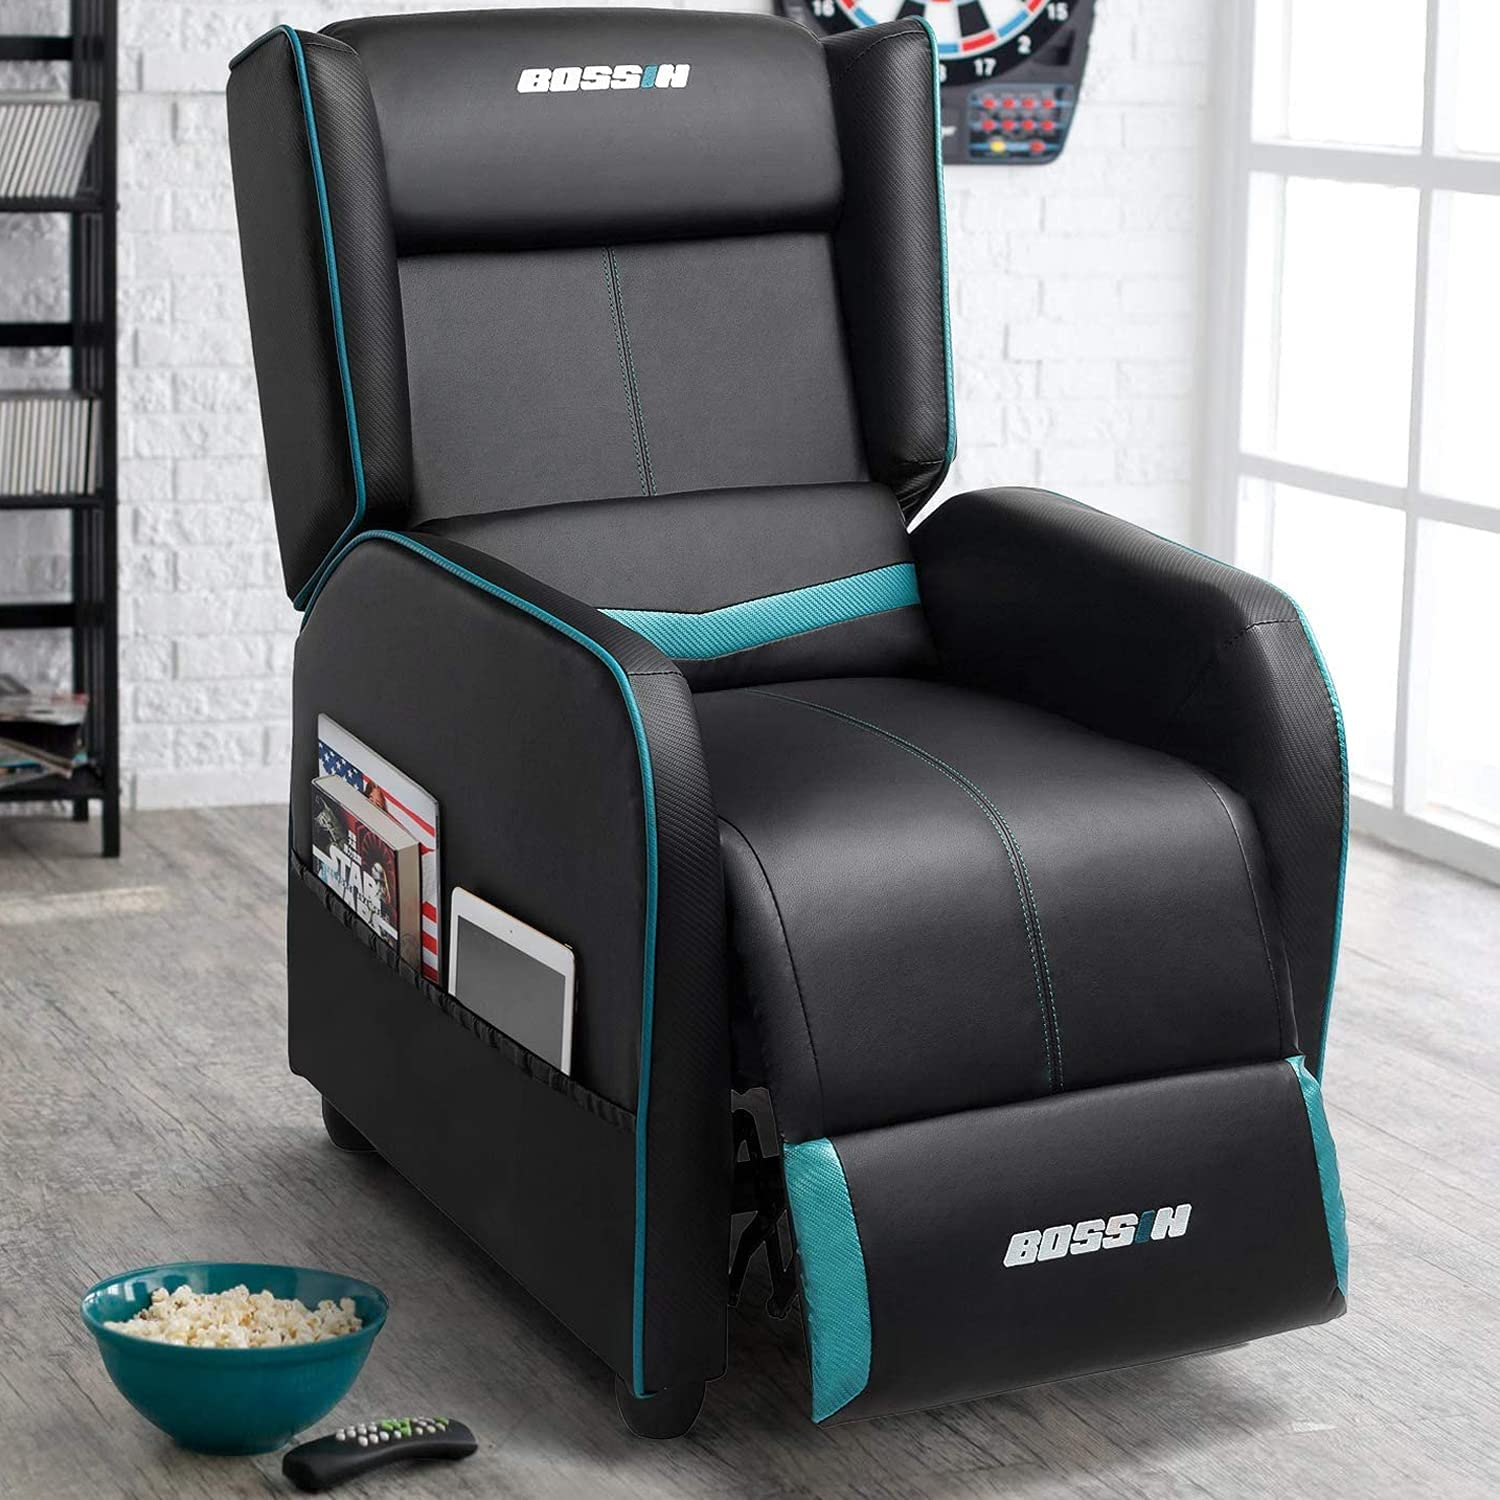 Lemberi Gaming Recliner Chair for Adults PU Leather Home Theater Seating Video Game Chairs for Living Room Ergonomic Racing Style Single Movie Gamer Lounge Sofa Teal Blue